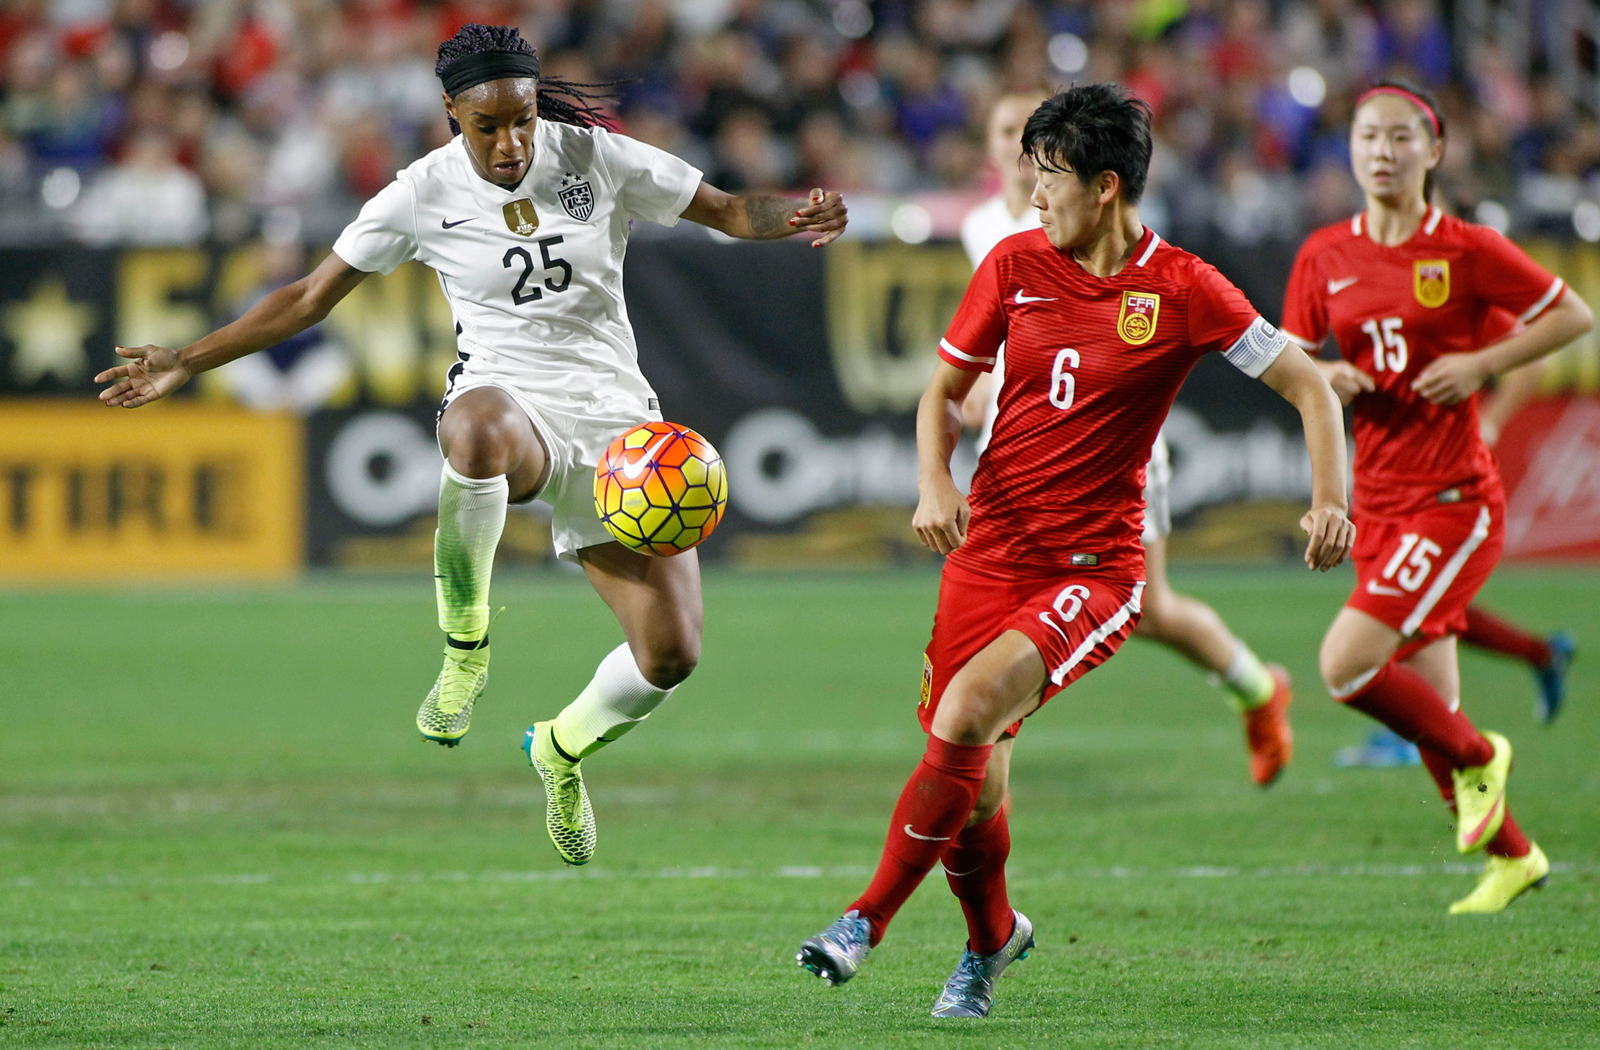 Crystal Dunn leaves her feet to settle a pass in the USA's 2-0 win over China at University of Phoenix Stadium in Glendale, Arizona. Dunn and Christen Press scored the goals.